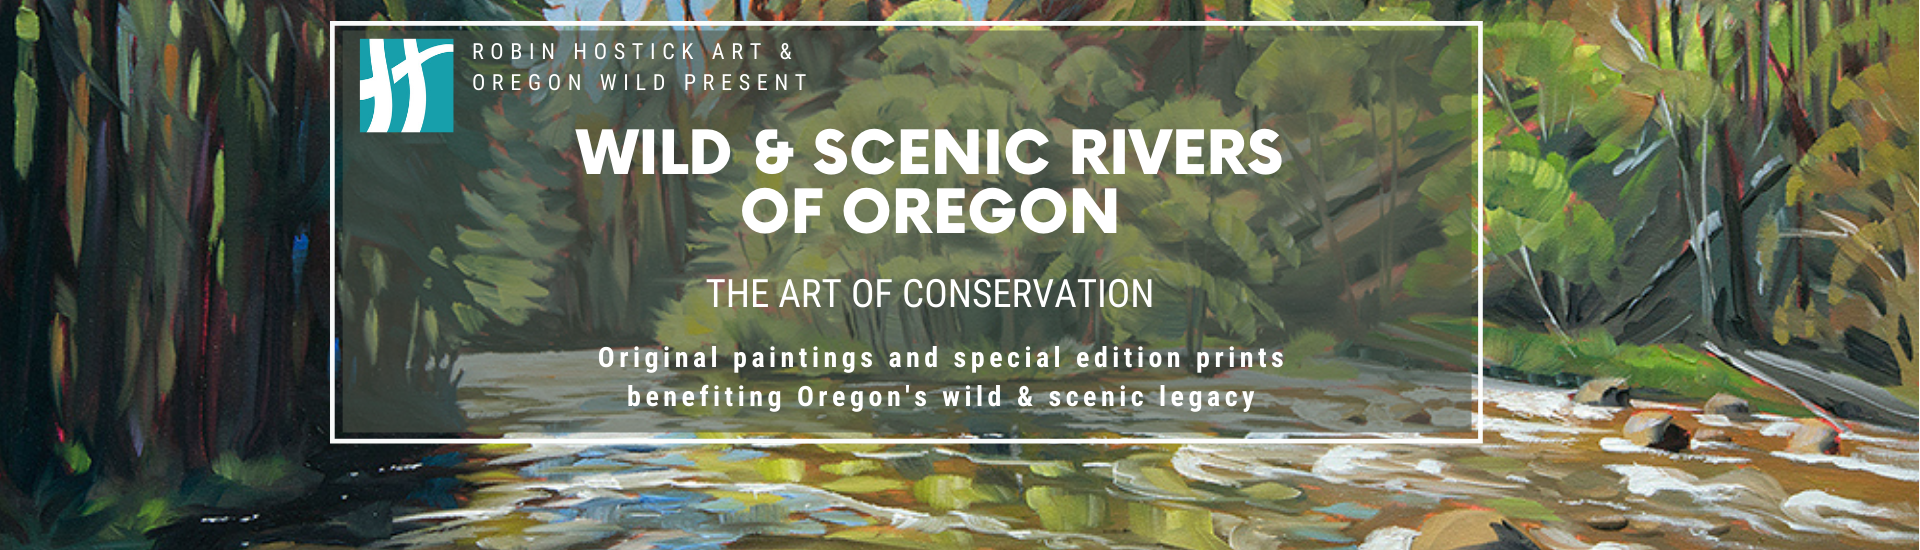 Wild & Scenic Rivers of Oregon - The Art of Conservation Campaign